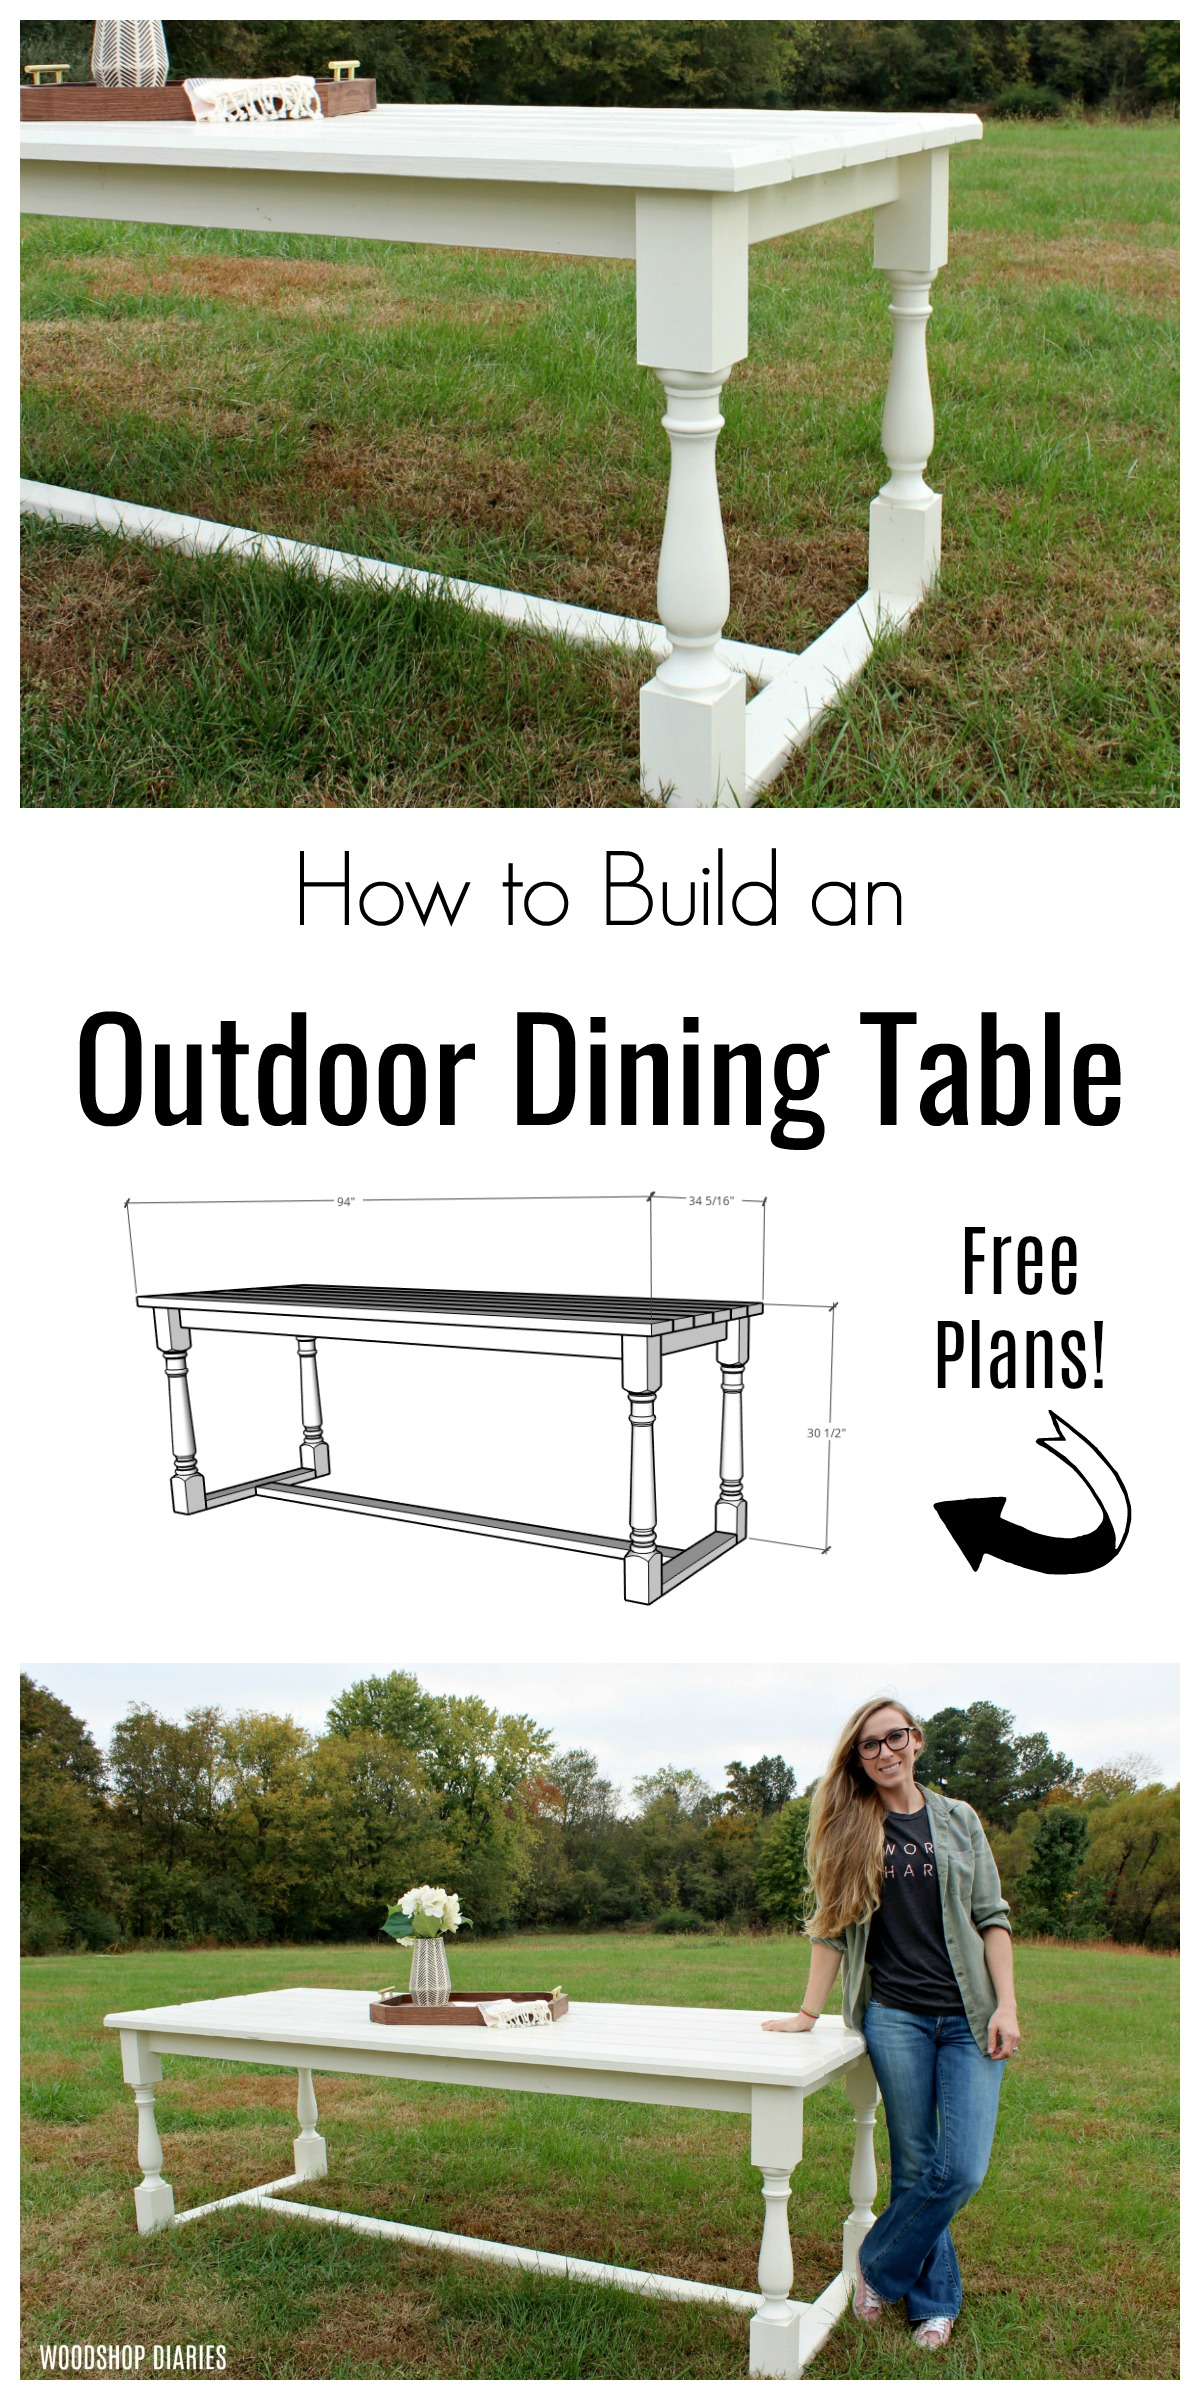 How to Build a DIY Outdoor Dining Table with free plans!